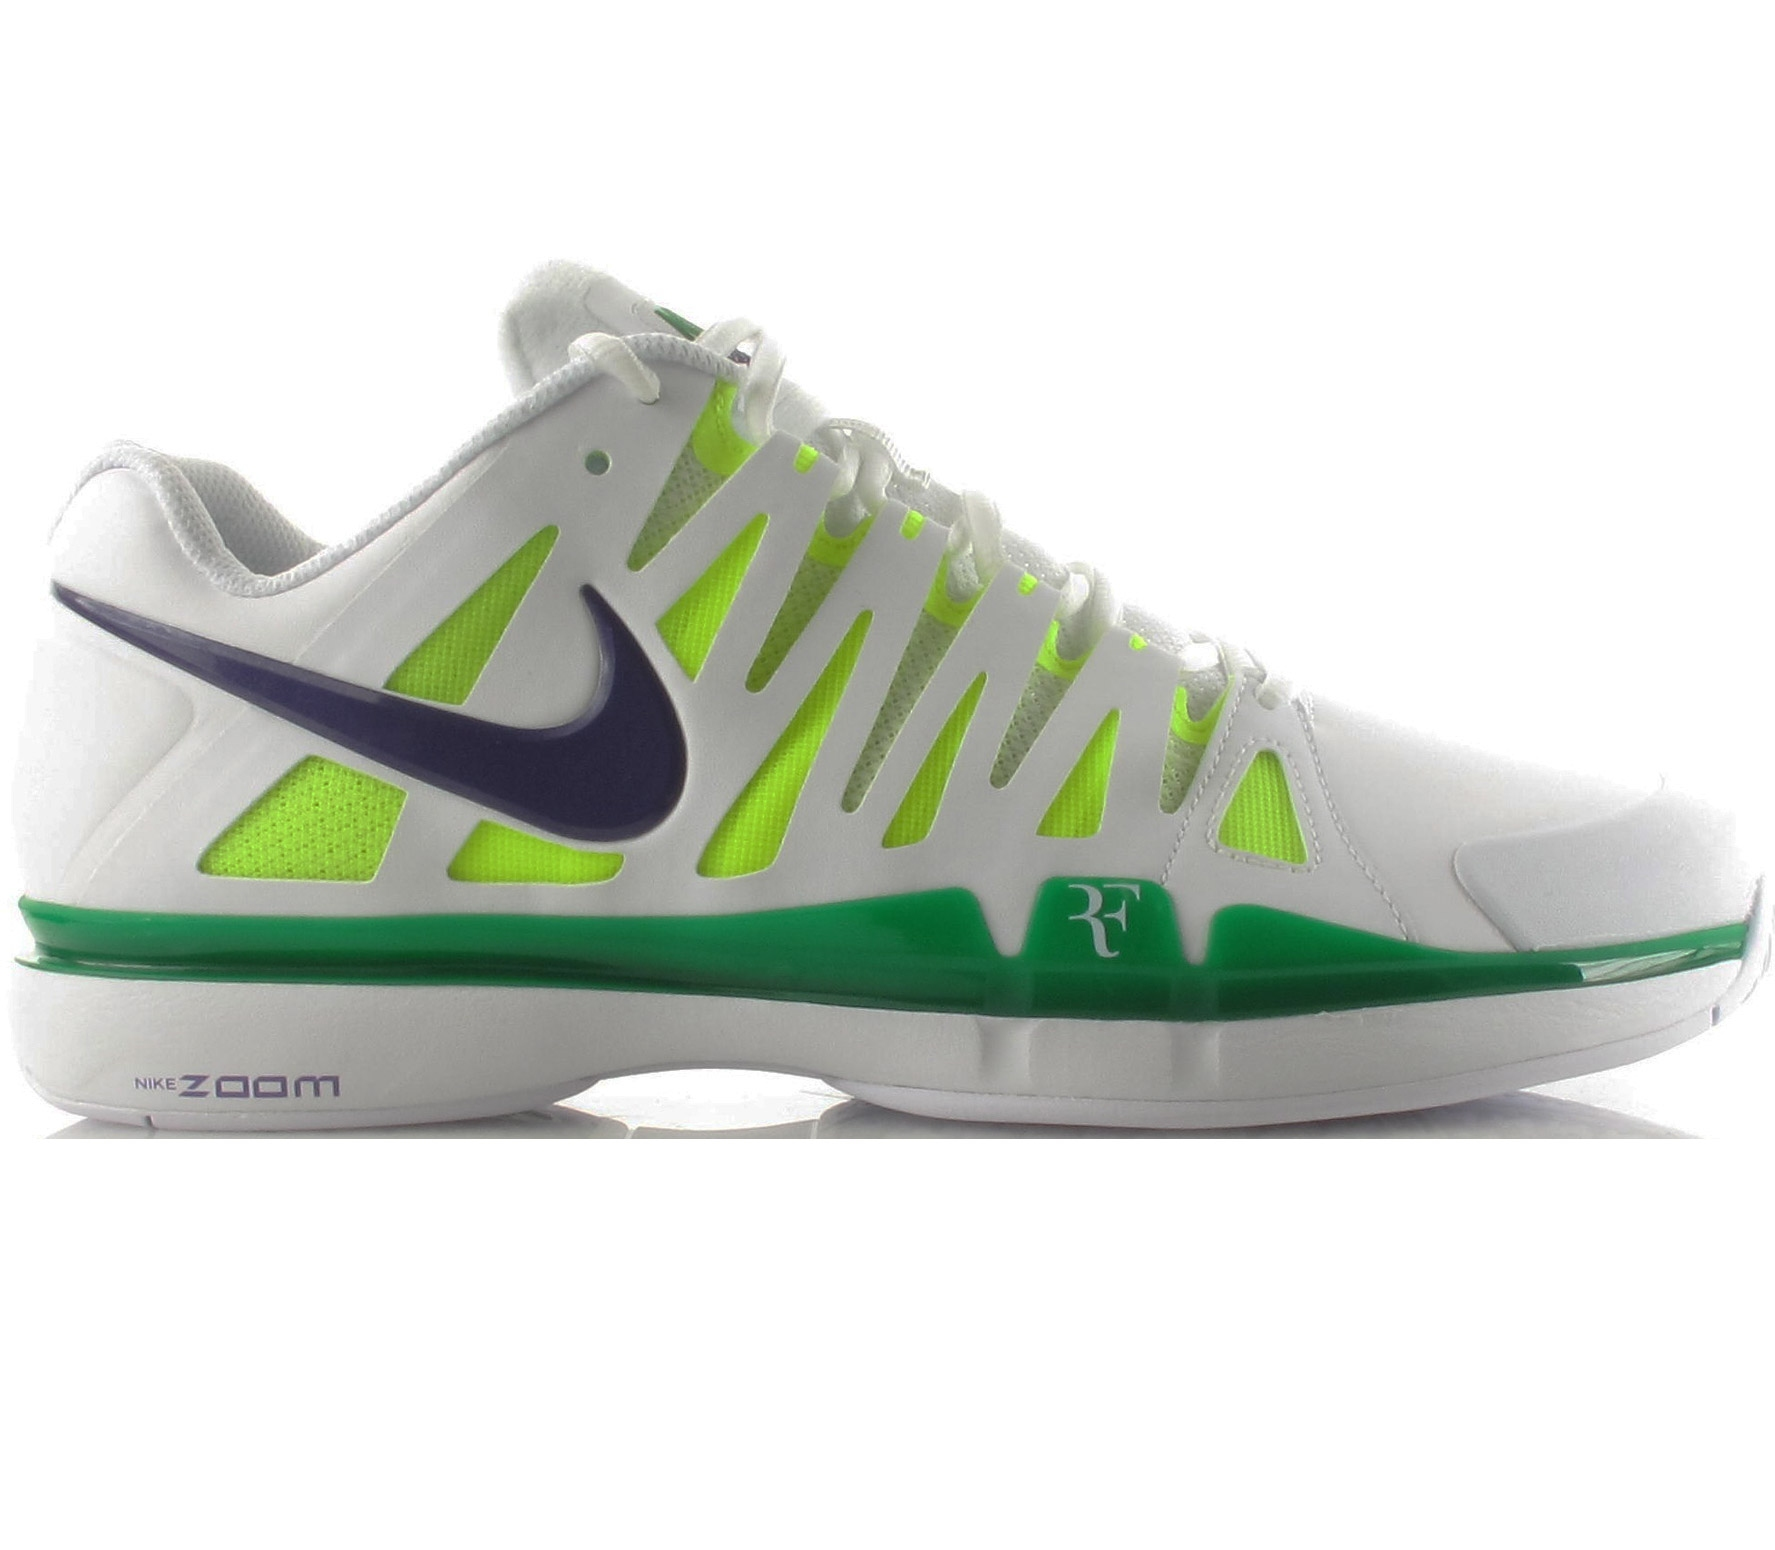 Hatfield collaborated to create the Zoom Vapor 9 Tour Mens Tennis Shoe